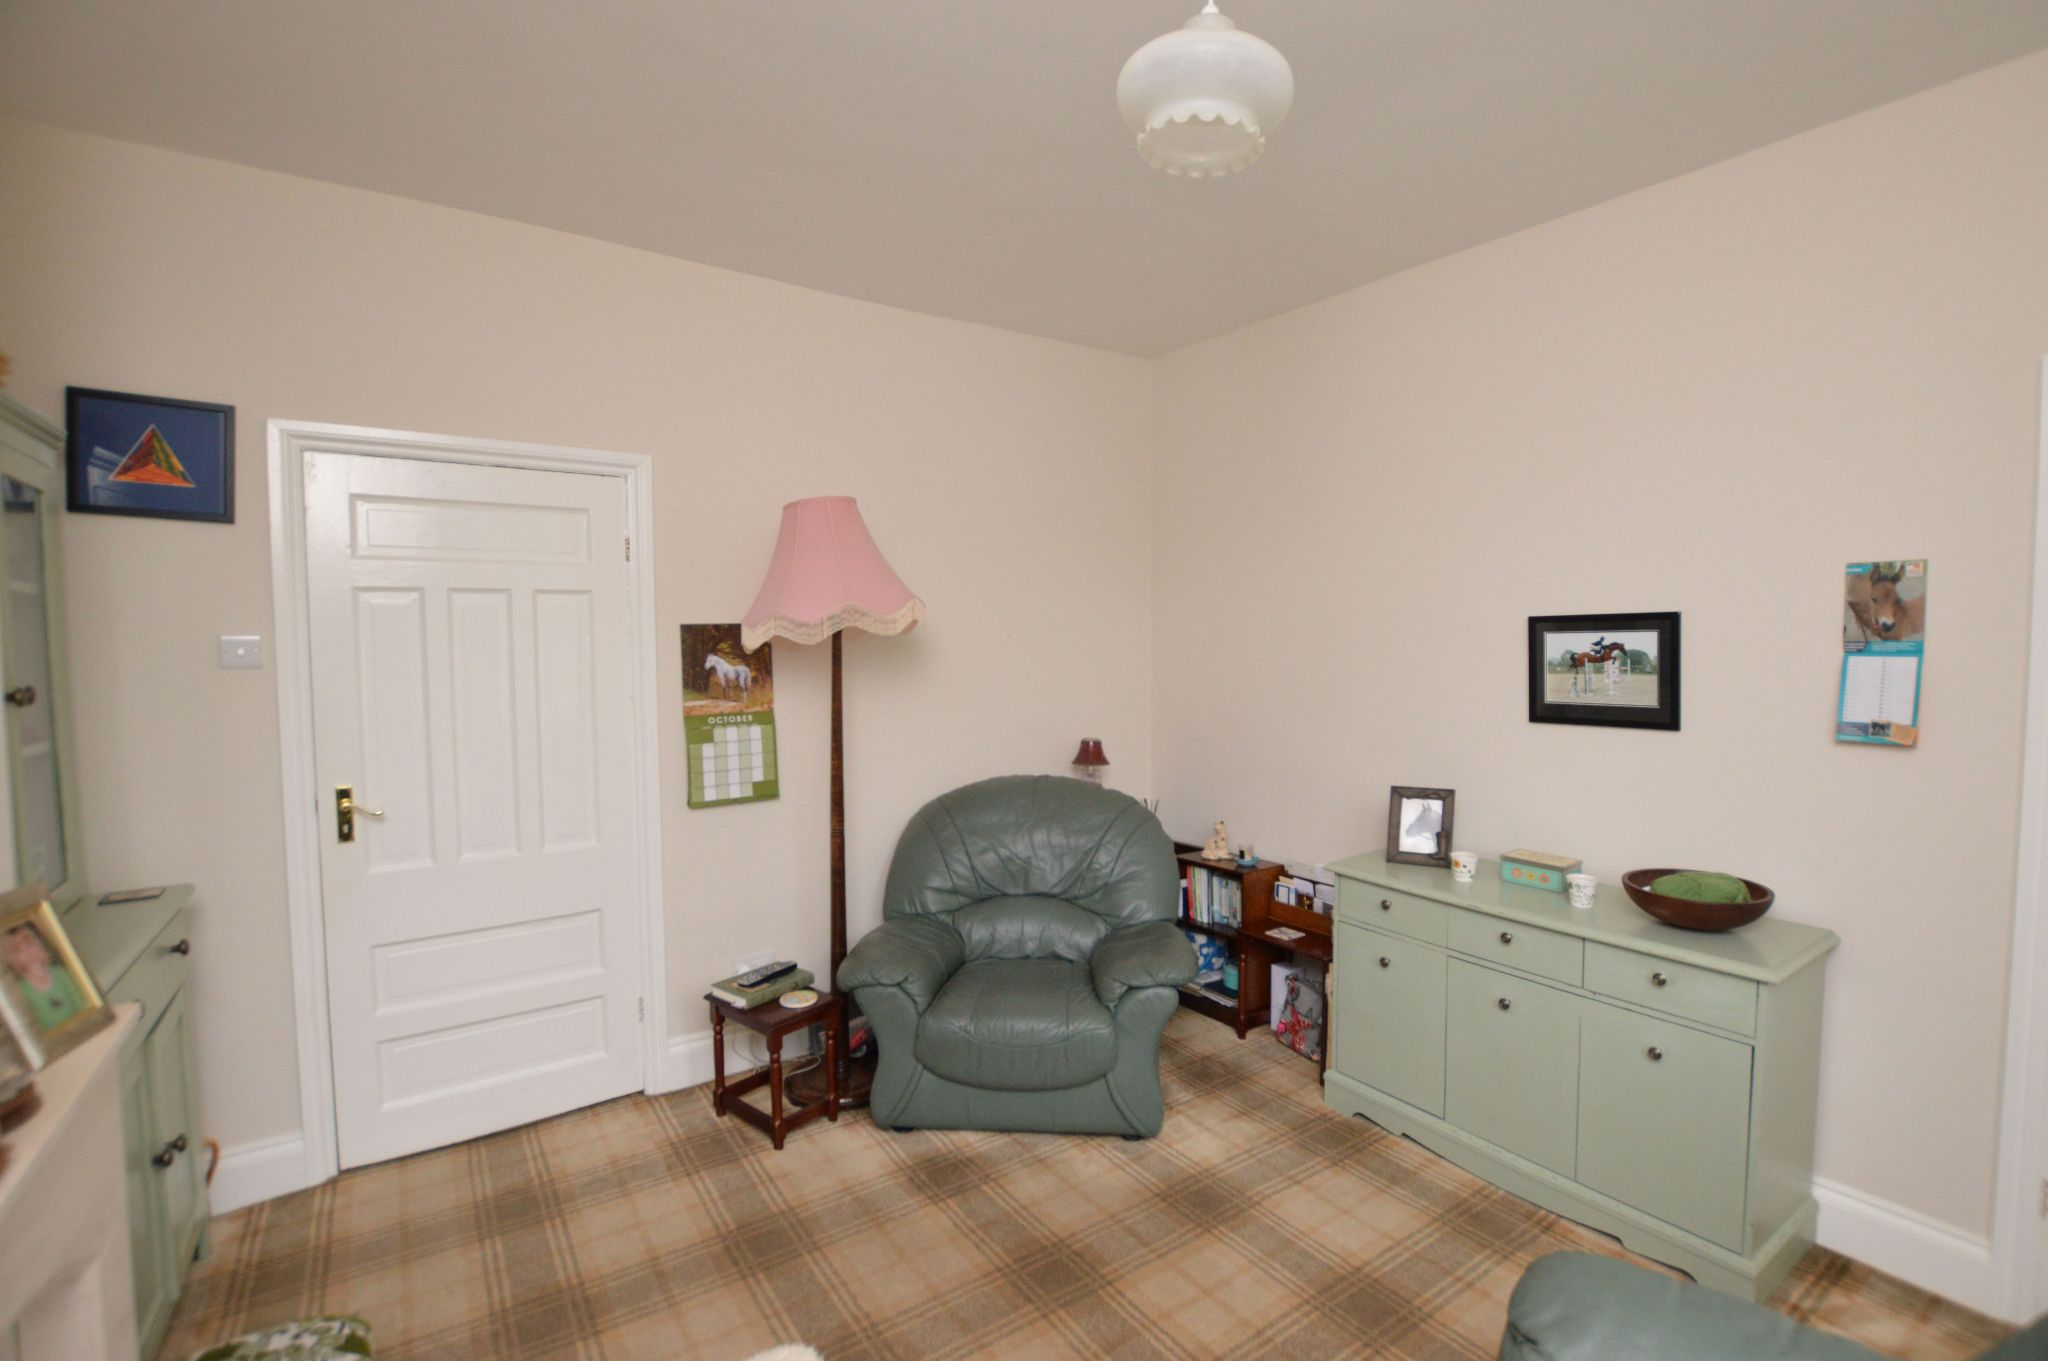 4 bedroom detached bungalow For Sale in Abergele - Reception Room View 2